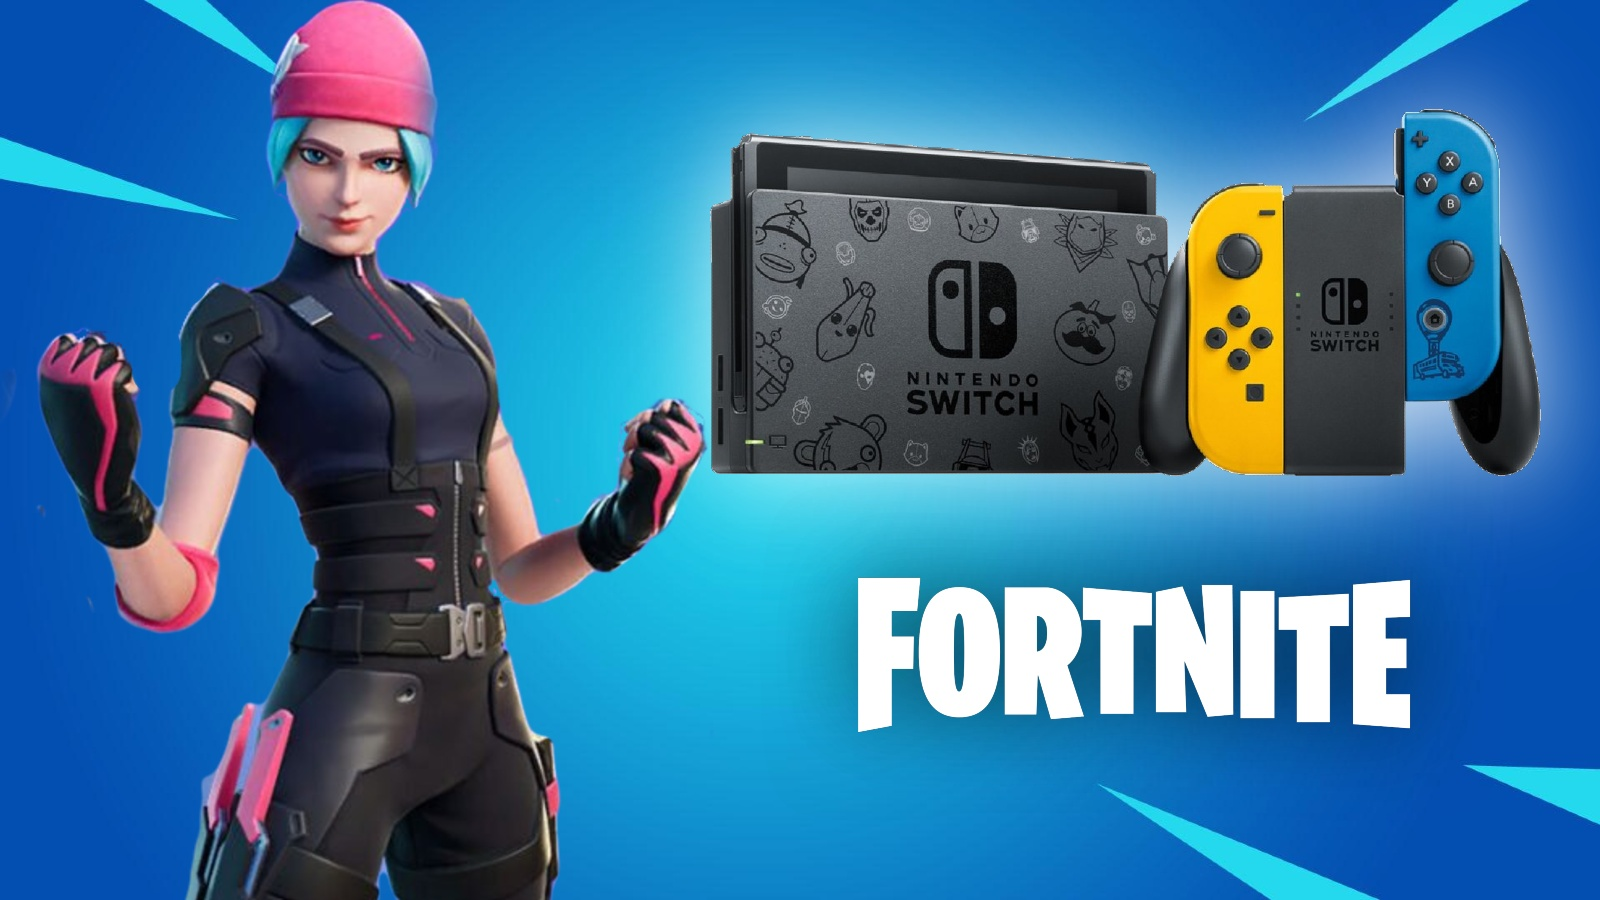 Nintendo Switch Fortnite Wildcat Pack bundle